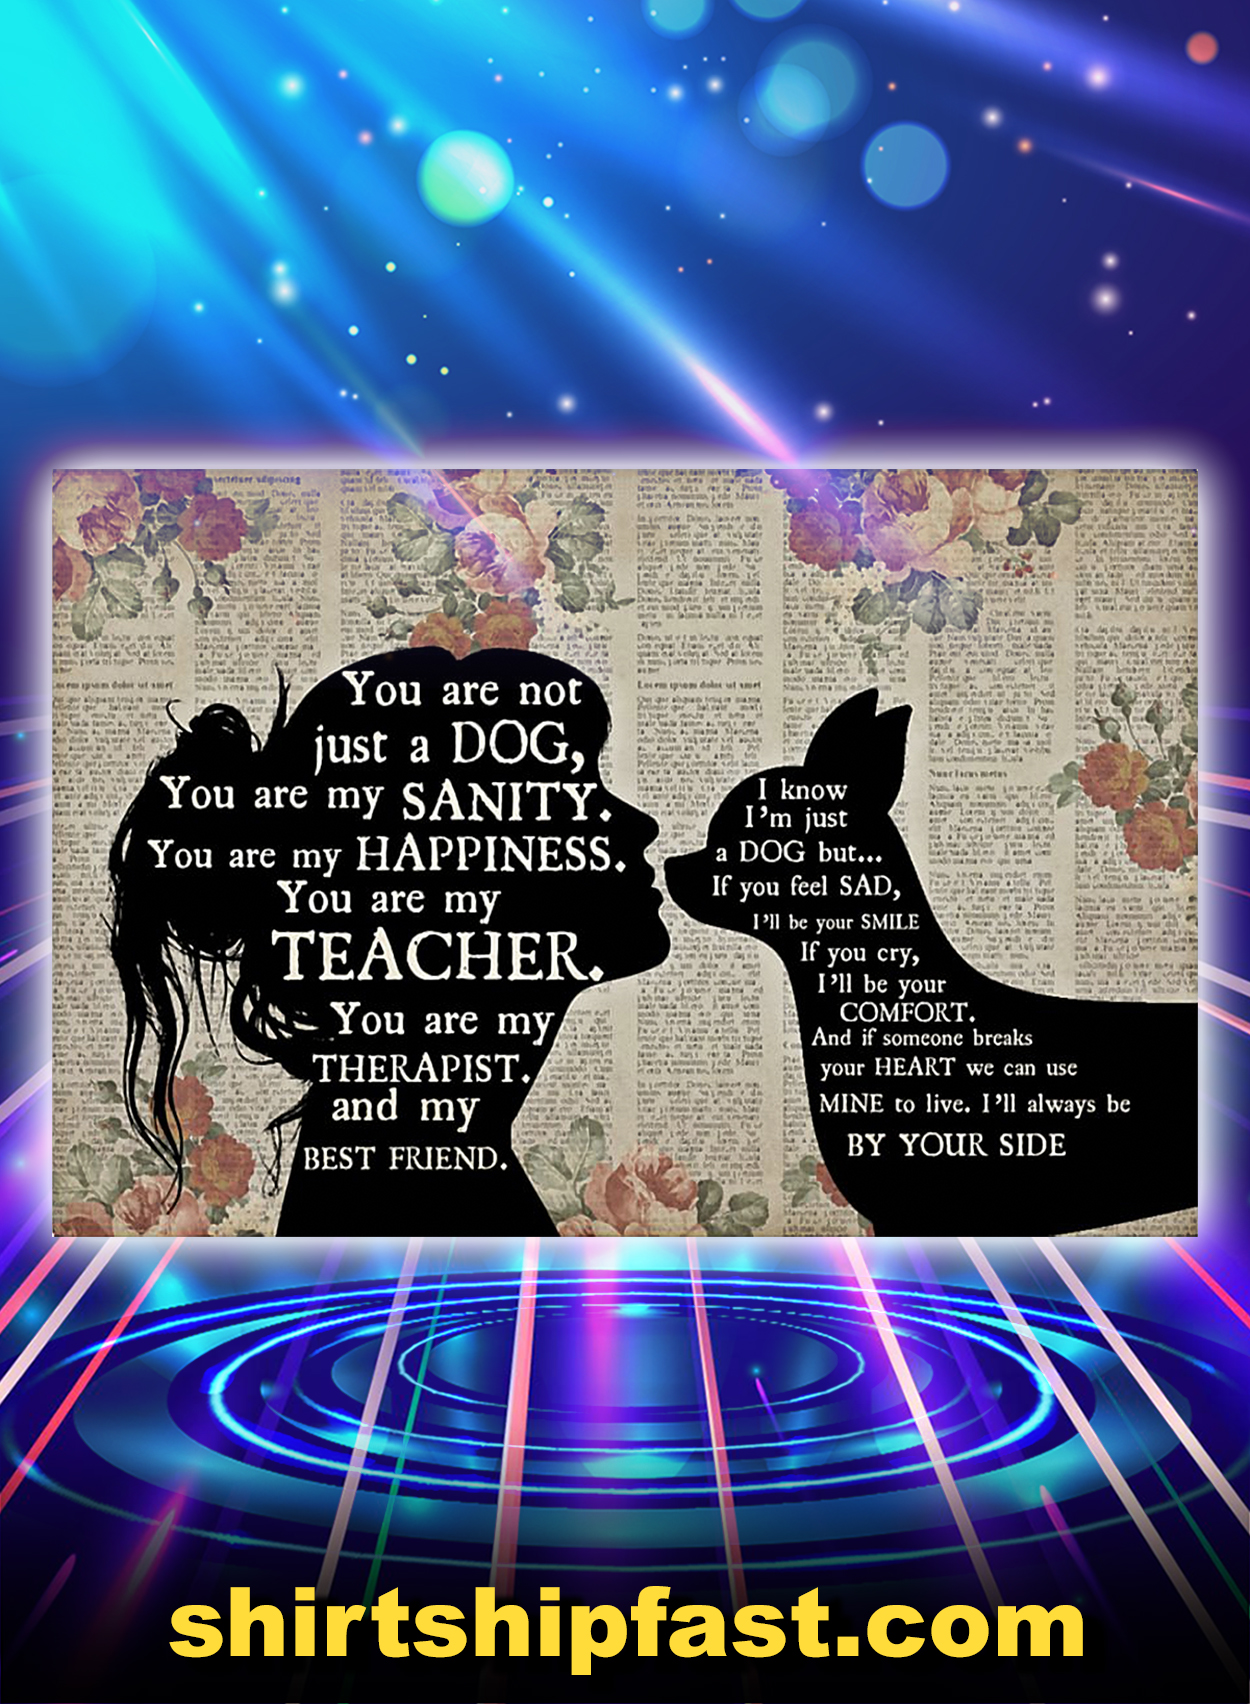 Chihuahua girl therapist best friend poster - A2